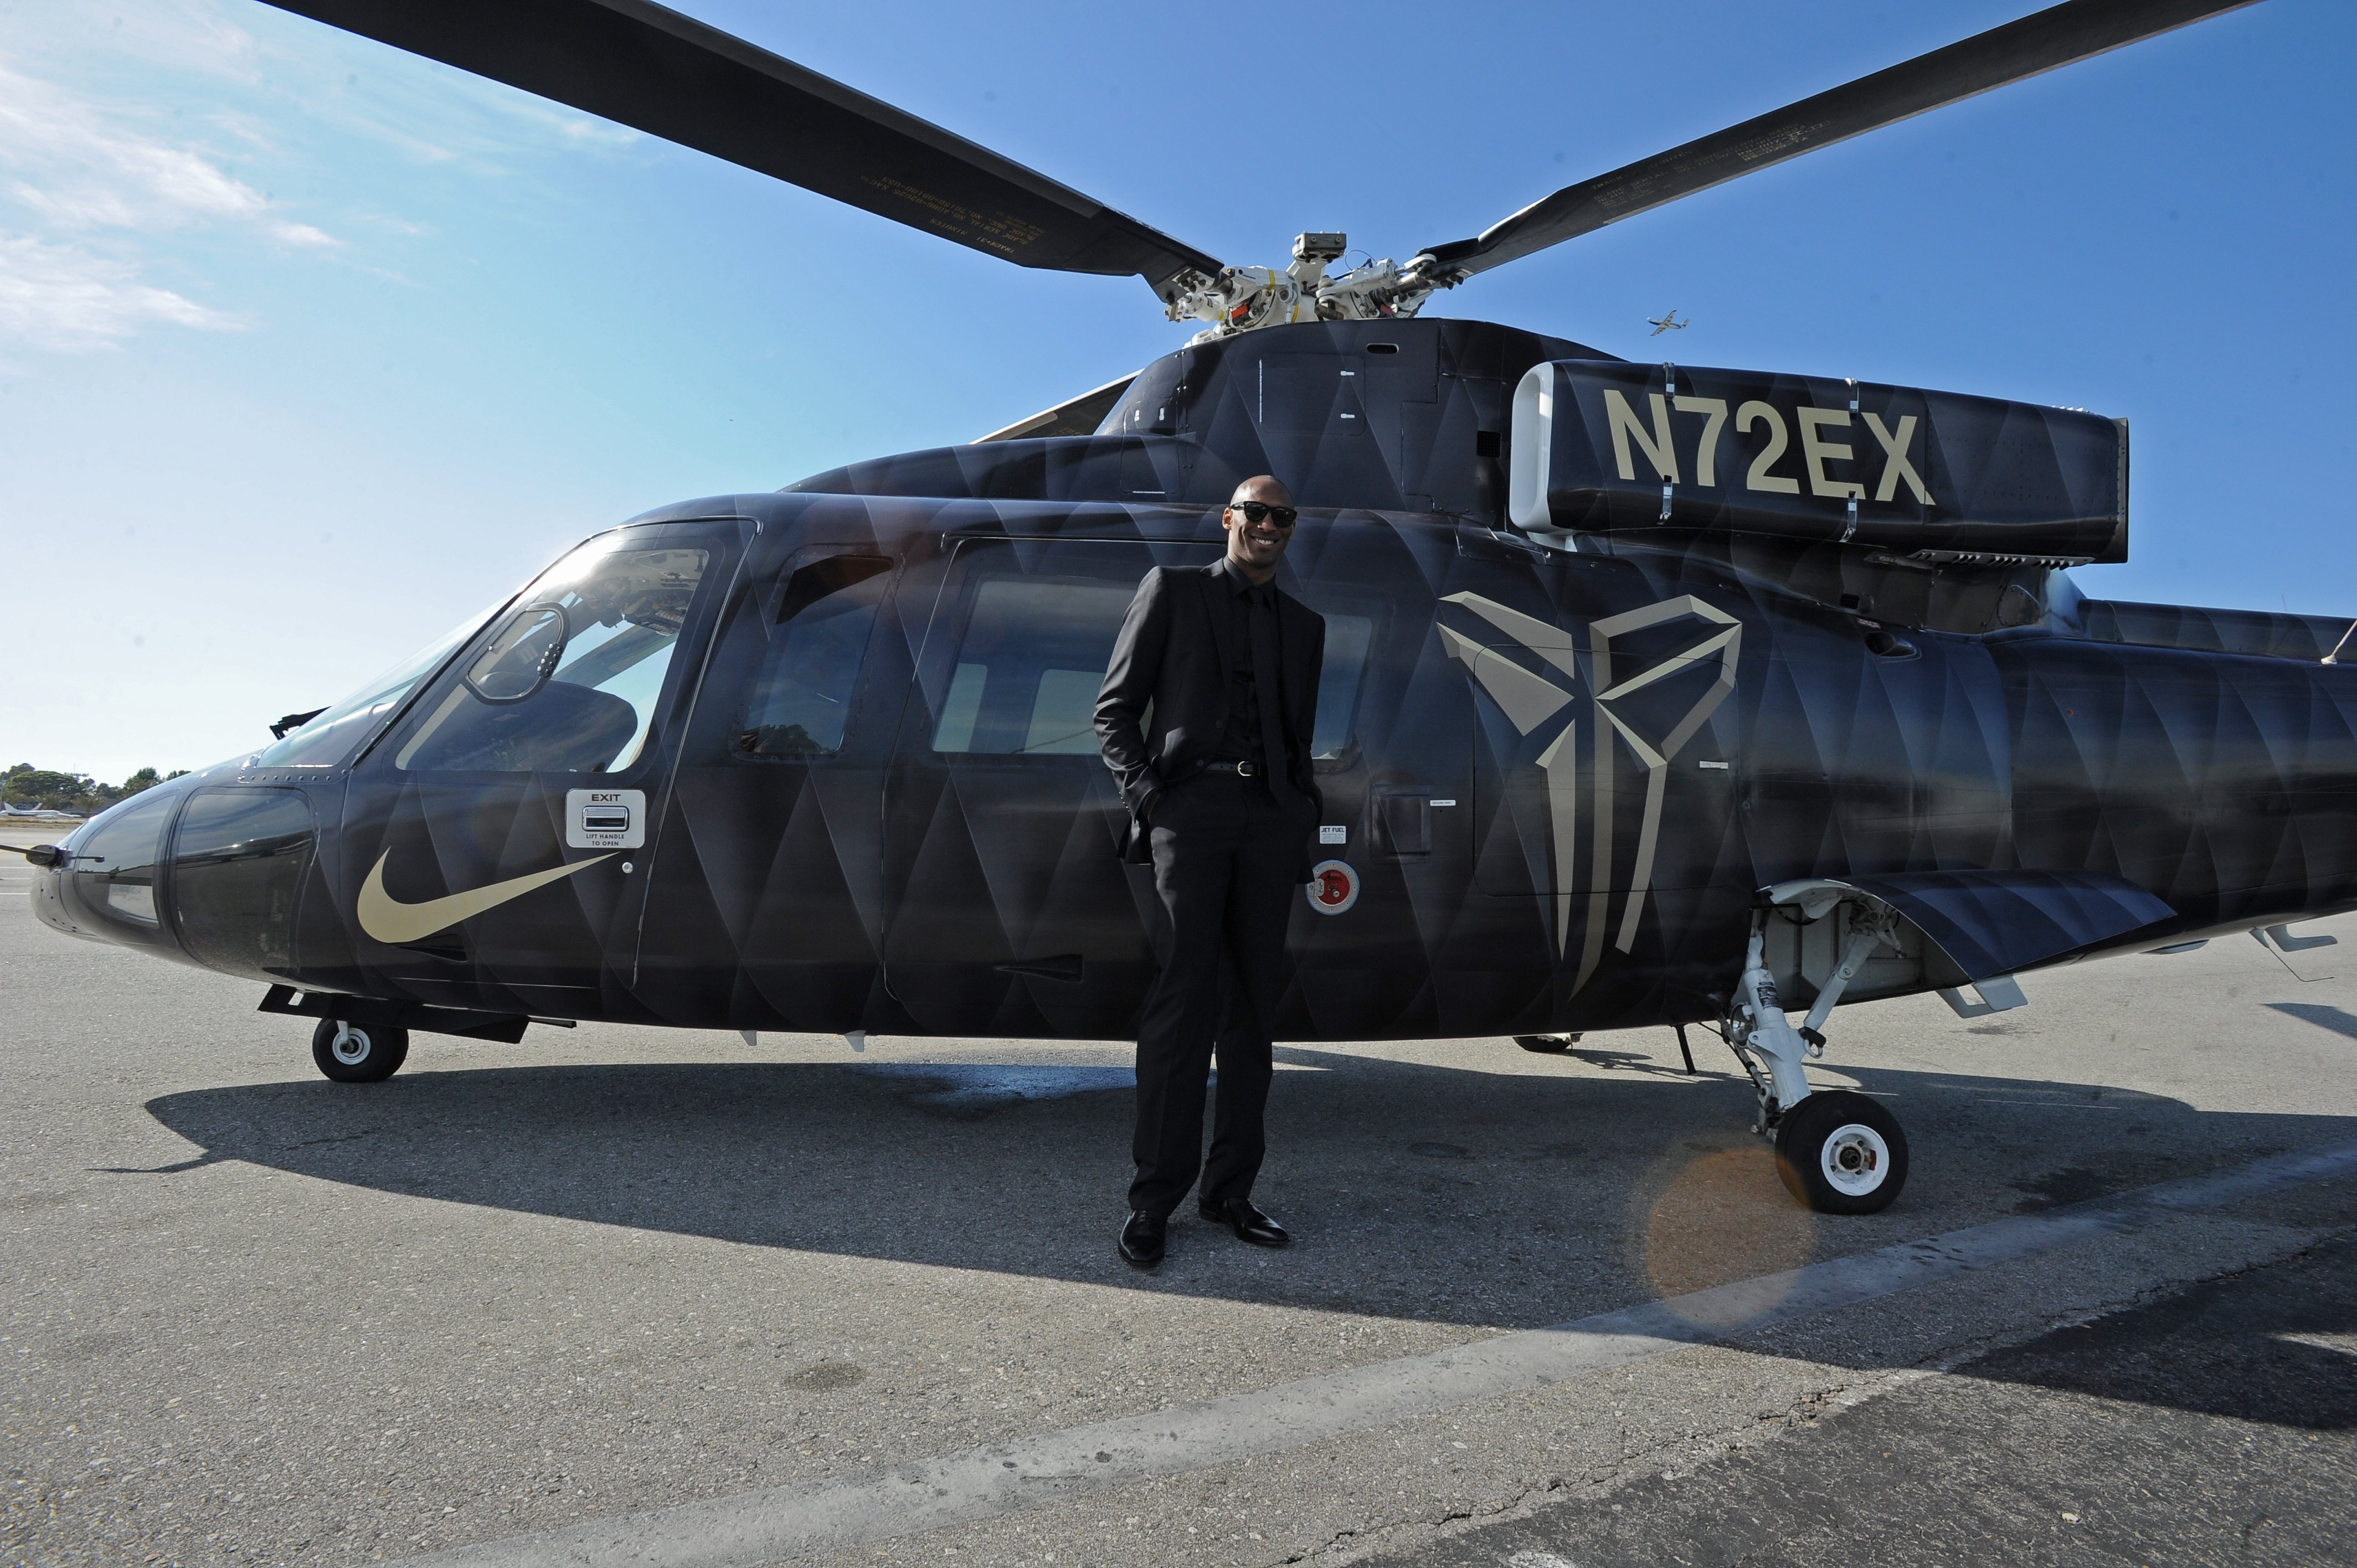 Kobe Bryant poses for a photo in front of the helicopter on April 13, 2016, at Staples Center in Los Angeles, California. | Source: Getty Images.